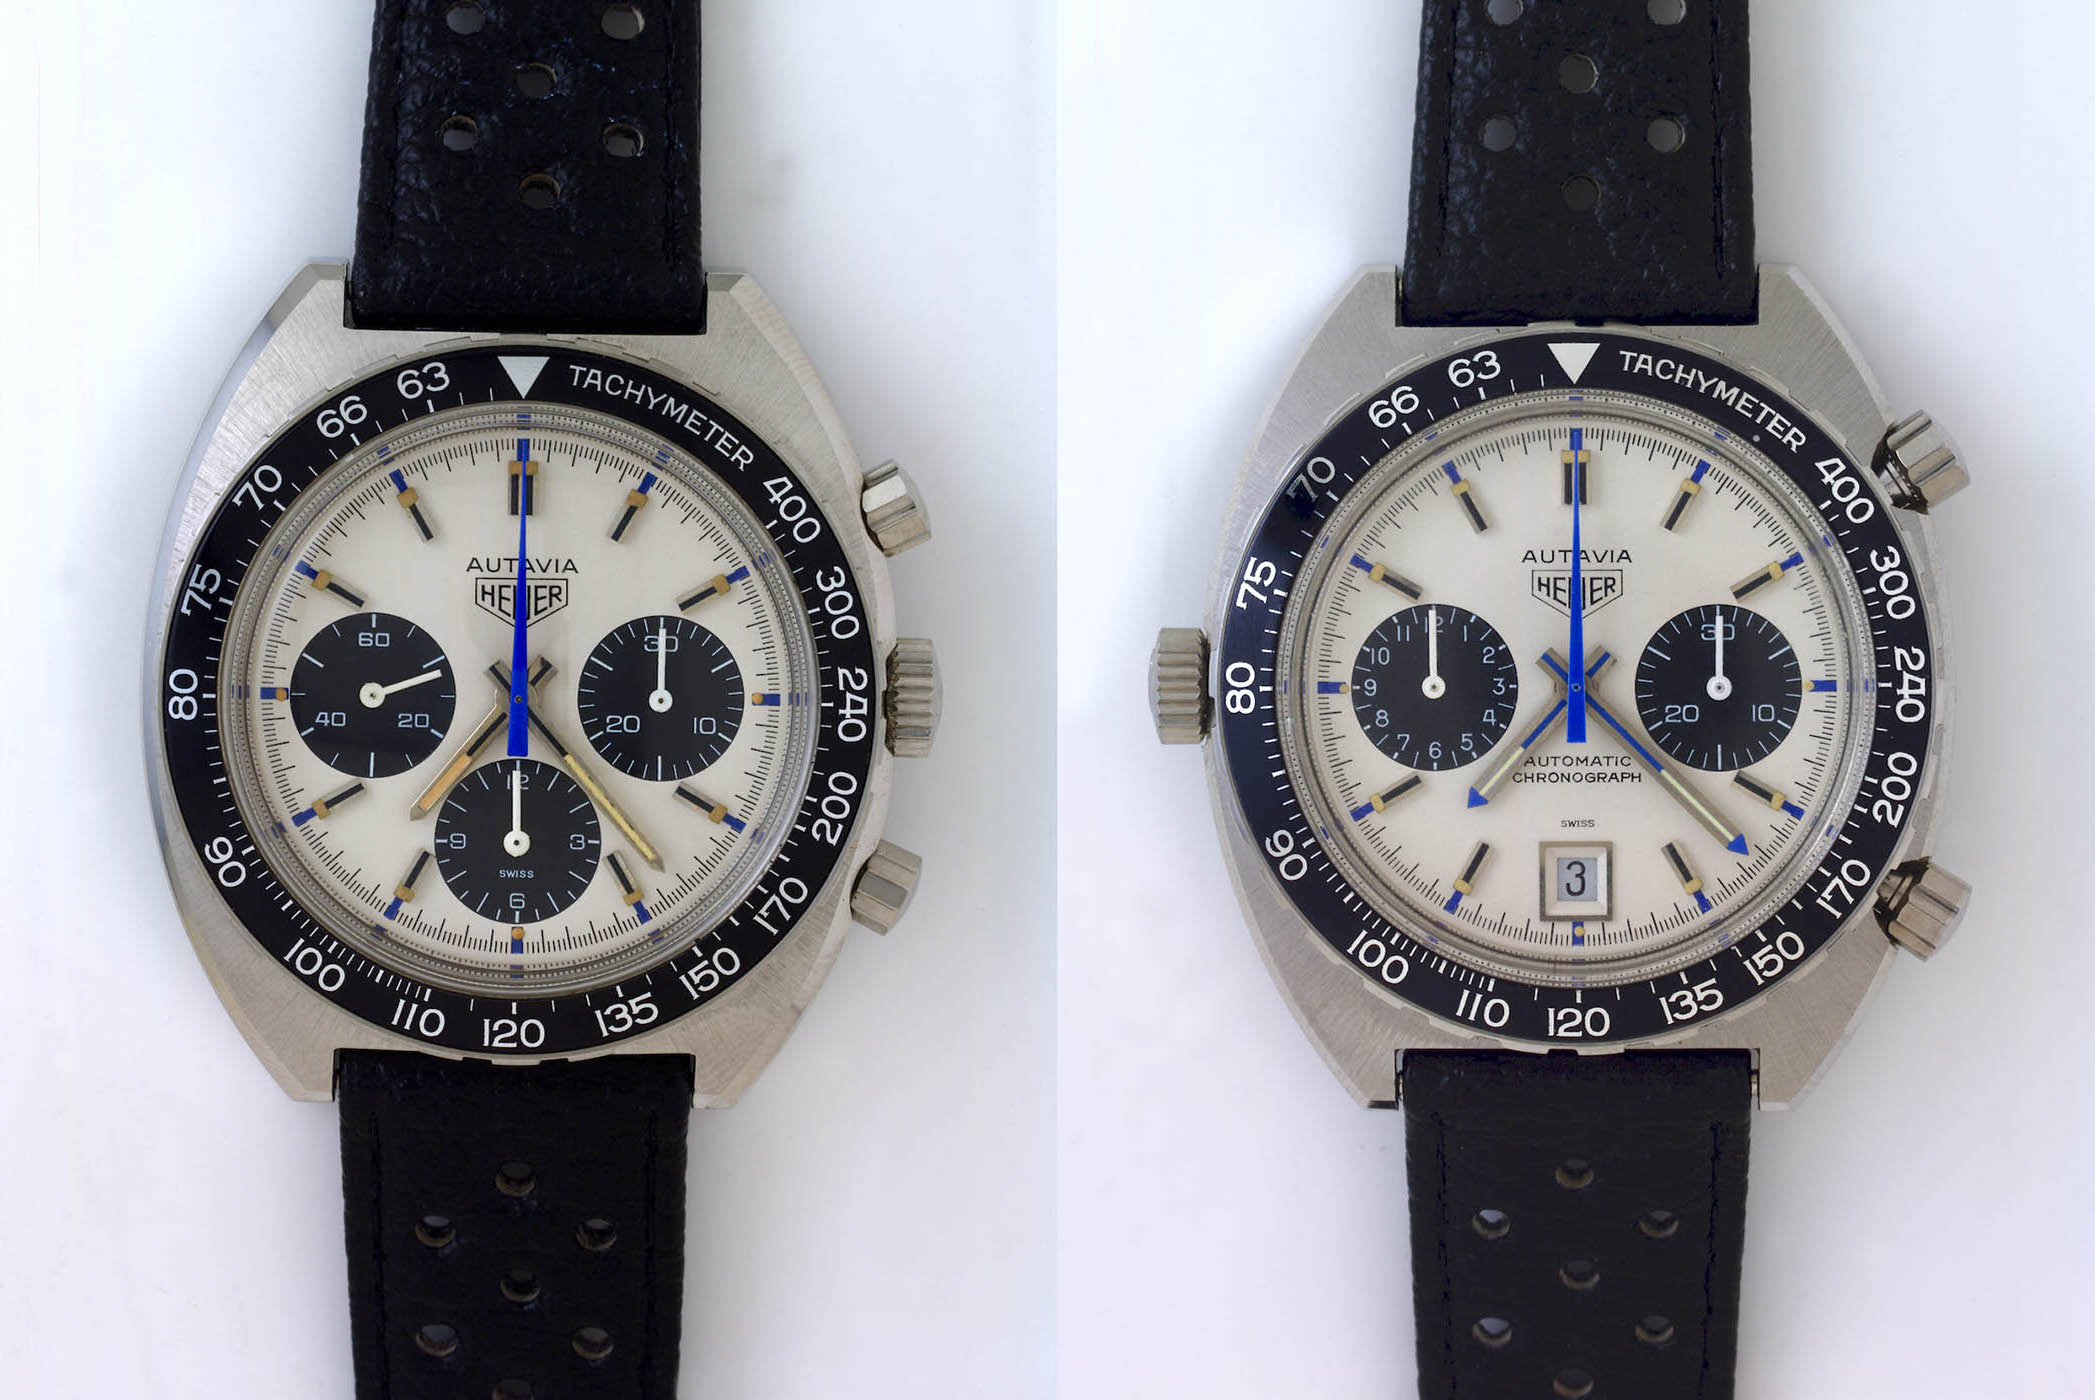 Heuer Autavia Siffert 73663 and 1163T